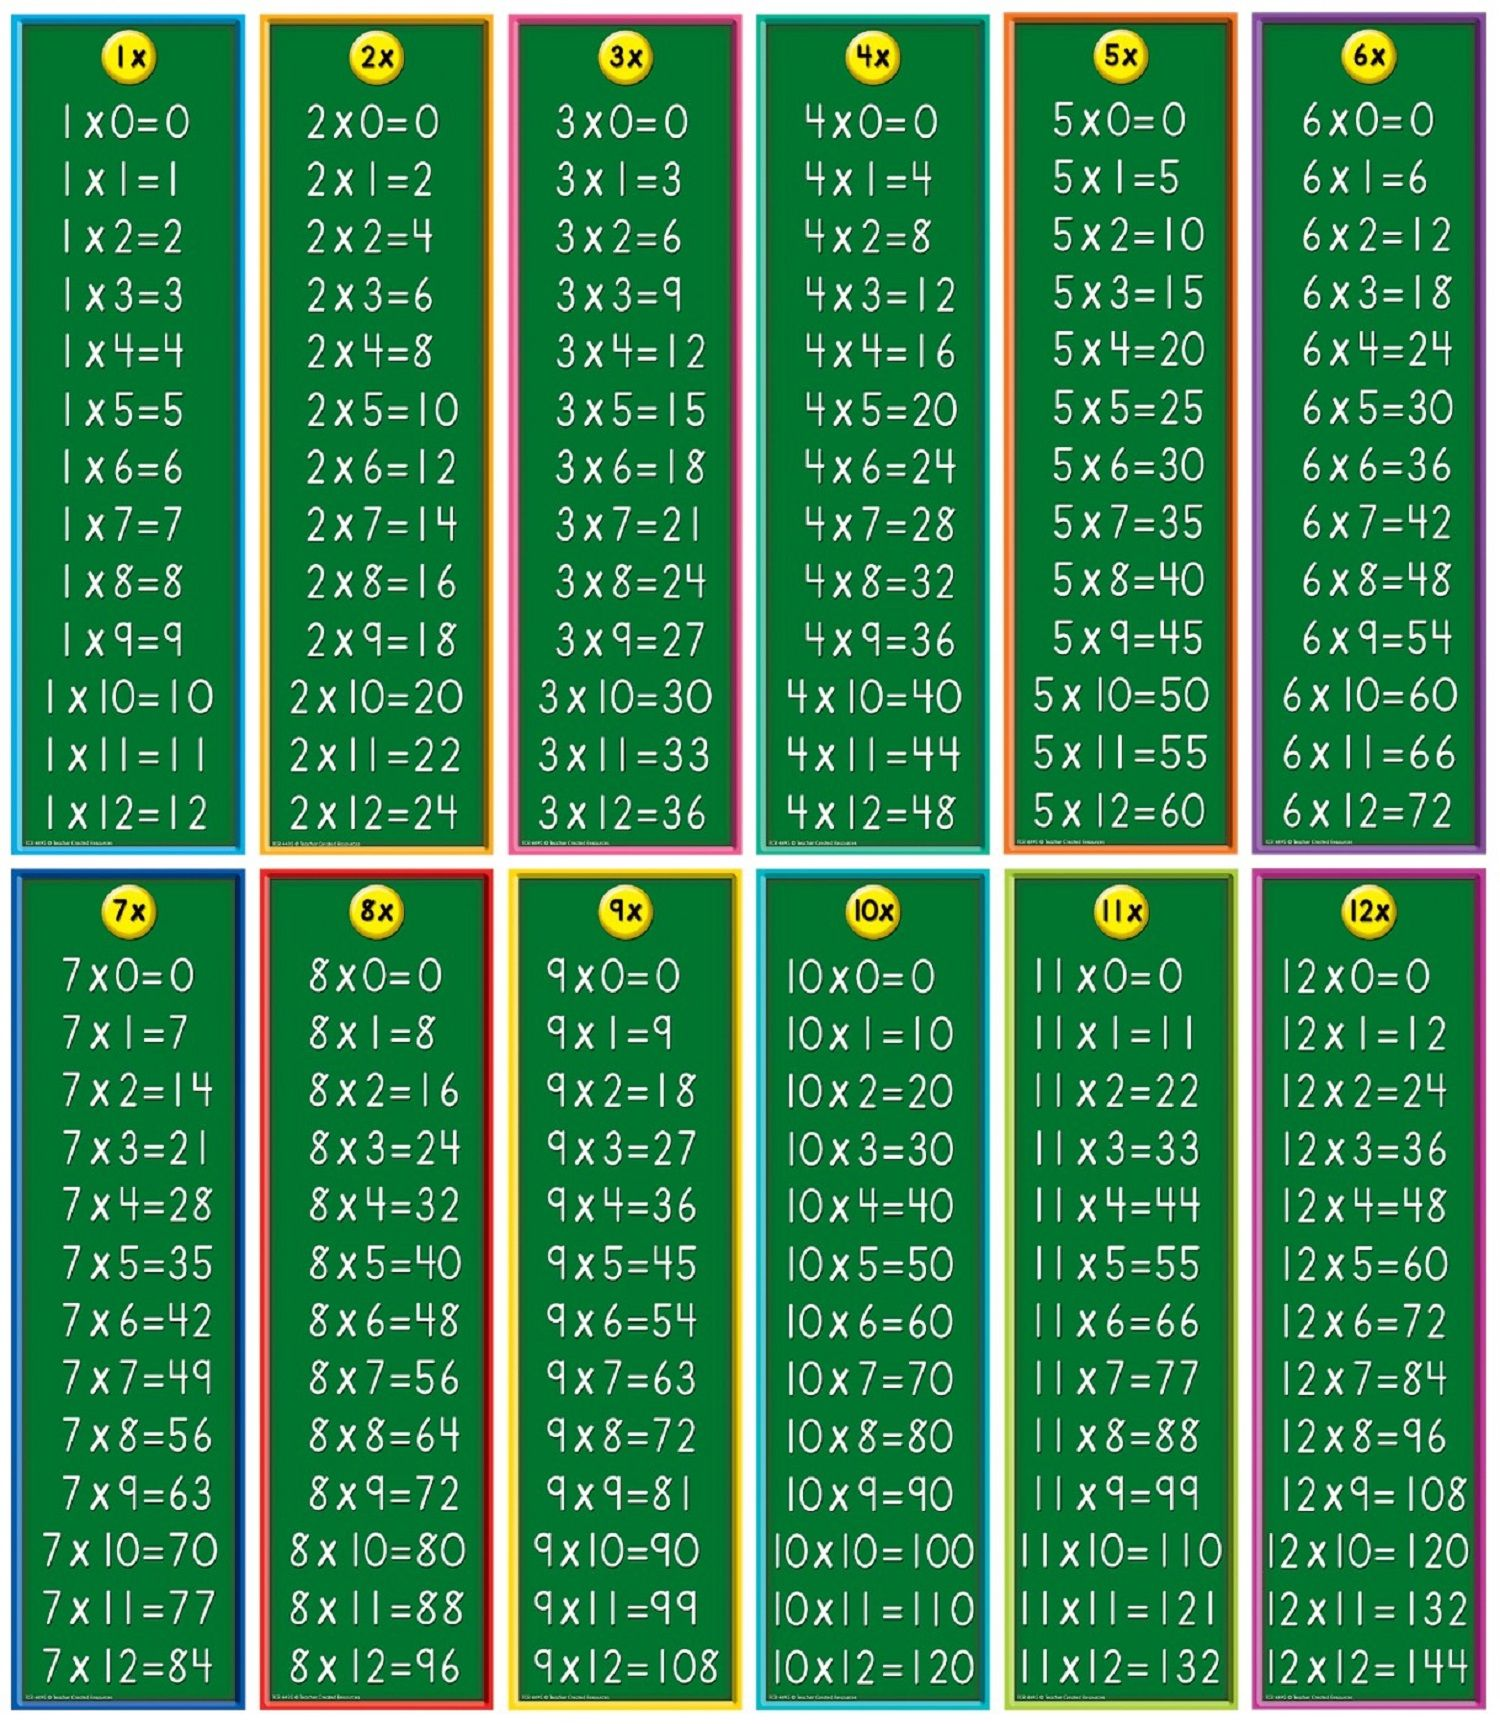 Multiplication Table for Children Mathematics Lesson